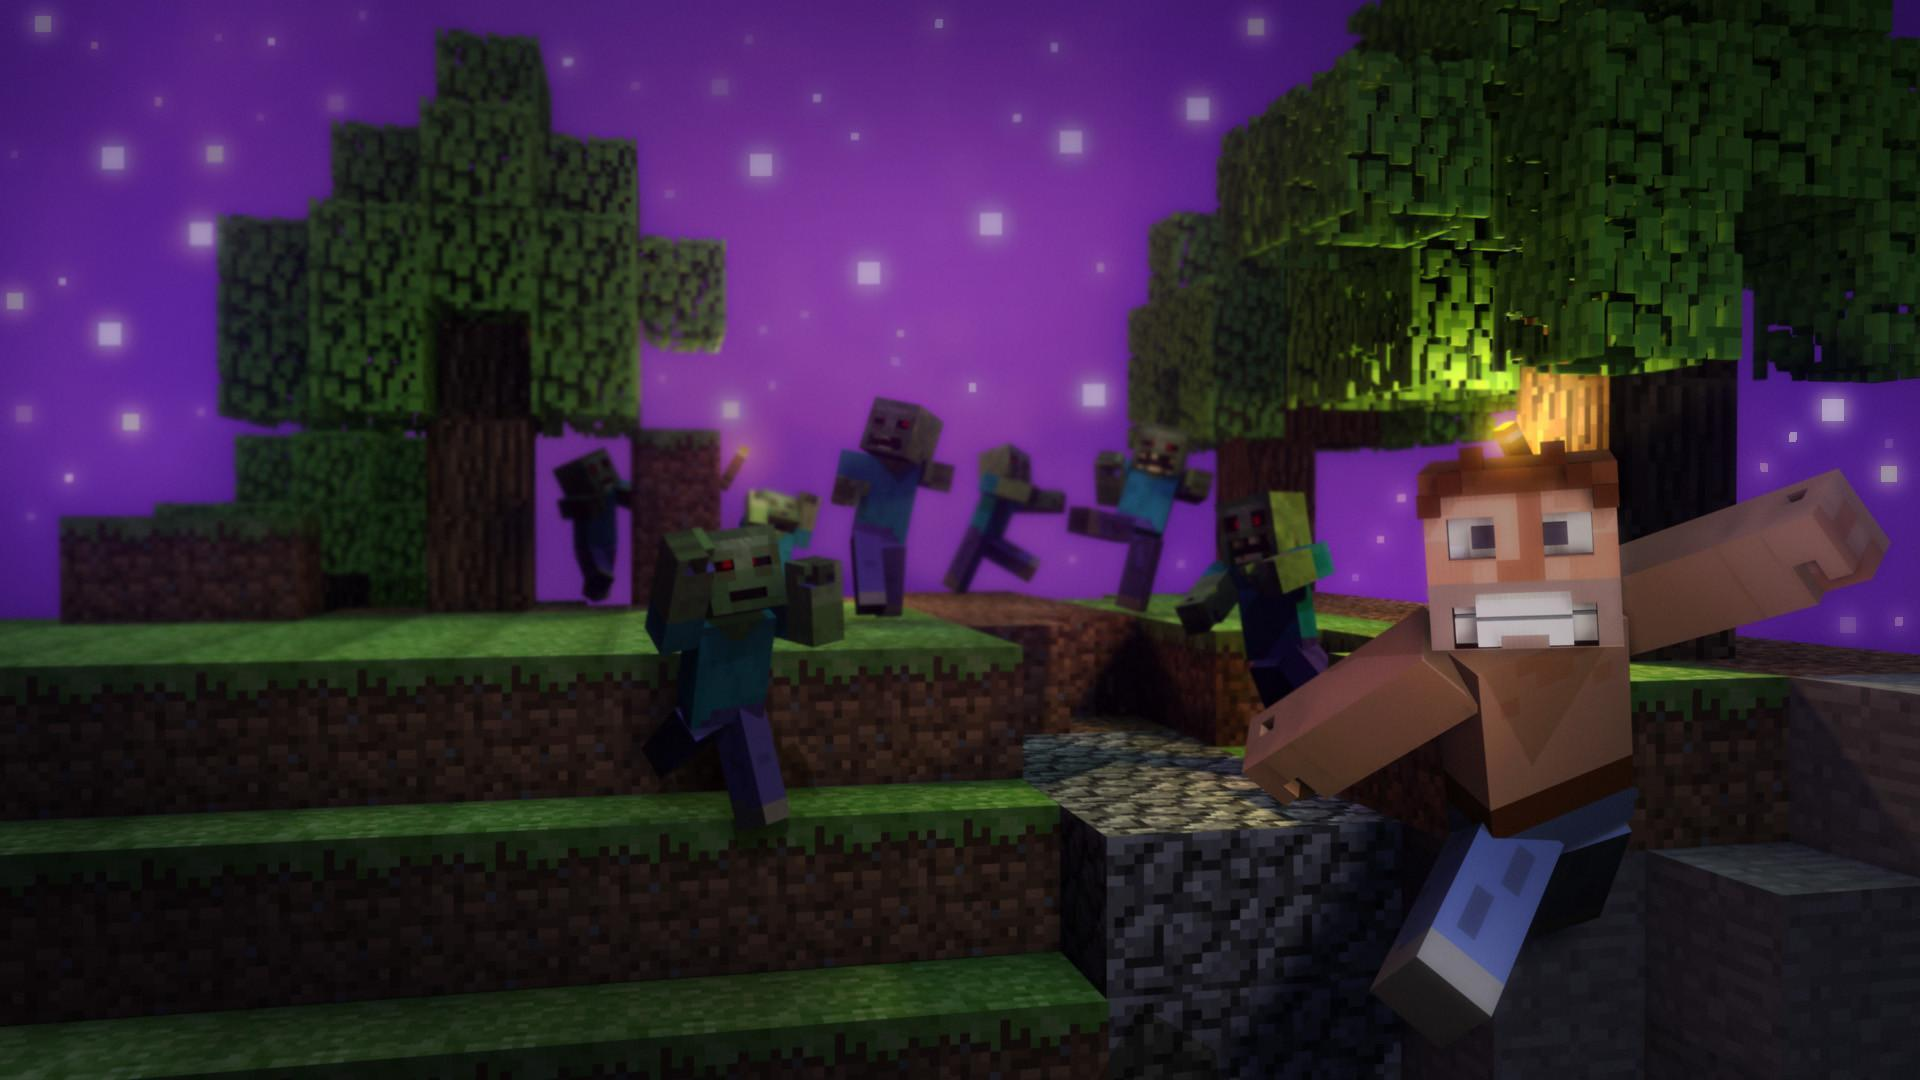 cool wallpapers of minecraft zombies - photo #12